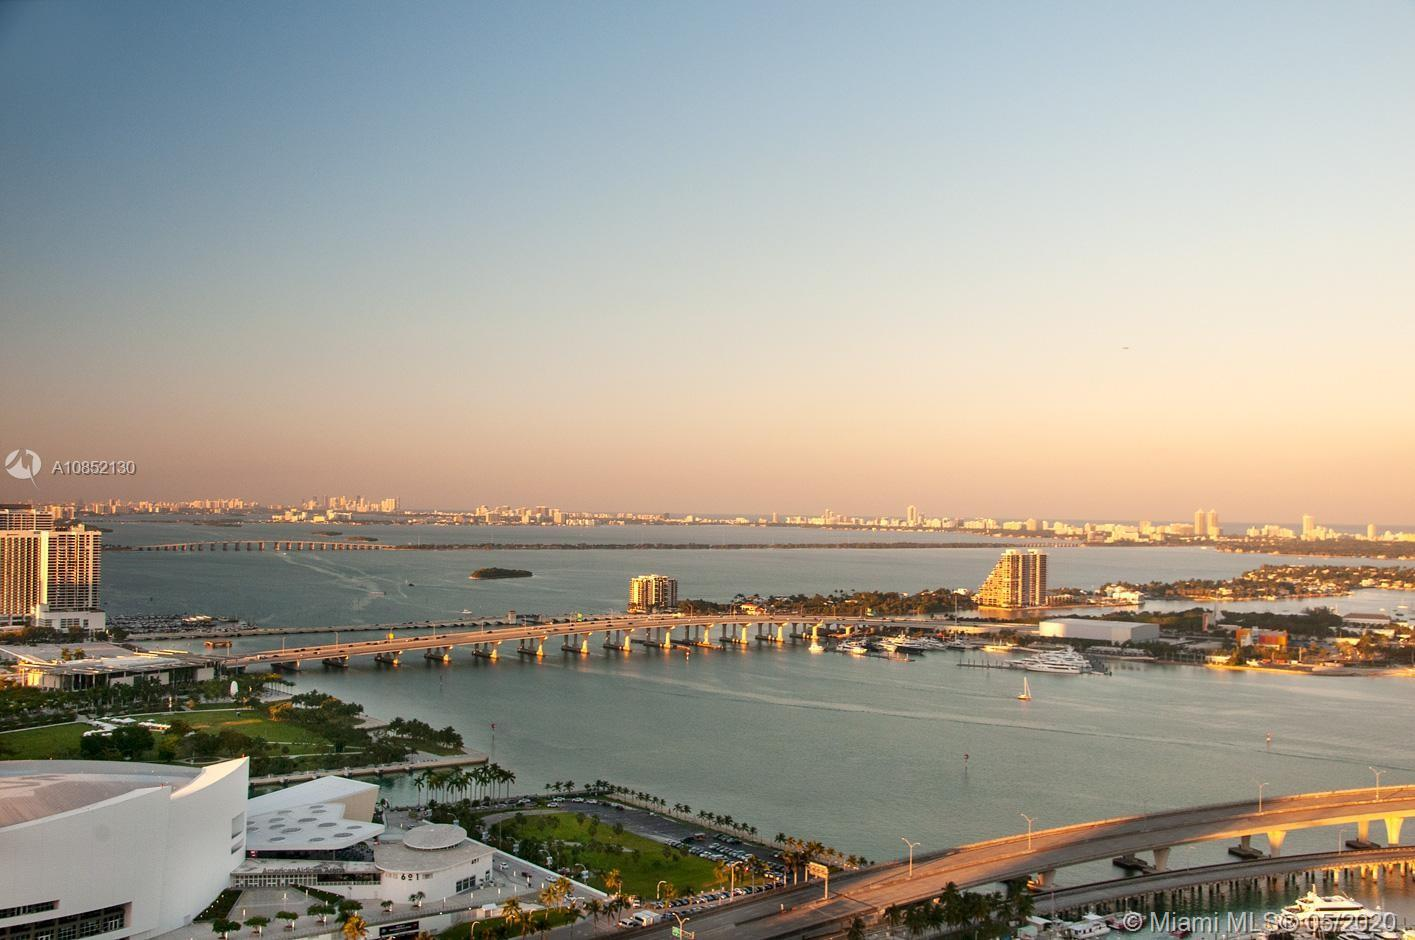 GREAT OPPORTUNITY FOR INVESTORS. UNIT RENTED UNTIL MARCH 2021 AT $2,850.  IMPRESSIVE OPEN BAY VIEWS IN PREMIUM AND DESIRED AREA. 2 BEDROOMS 2 BATHROOMS . BEAUTIFUL LIKE-WOOD PORCELAIN FLOORS THROUGHOUT. AMAZING KITCHEN. STUNNING DIRECT VIEWS TO BAY AND THE PORT OF MIAMI 1 ASSIGNED PARKING SPACE.  SELLER MOTIVATED!!